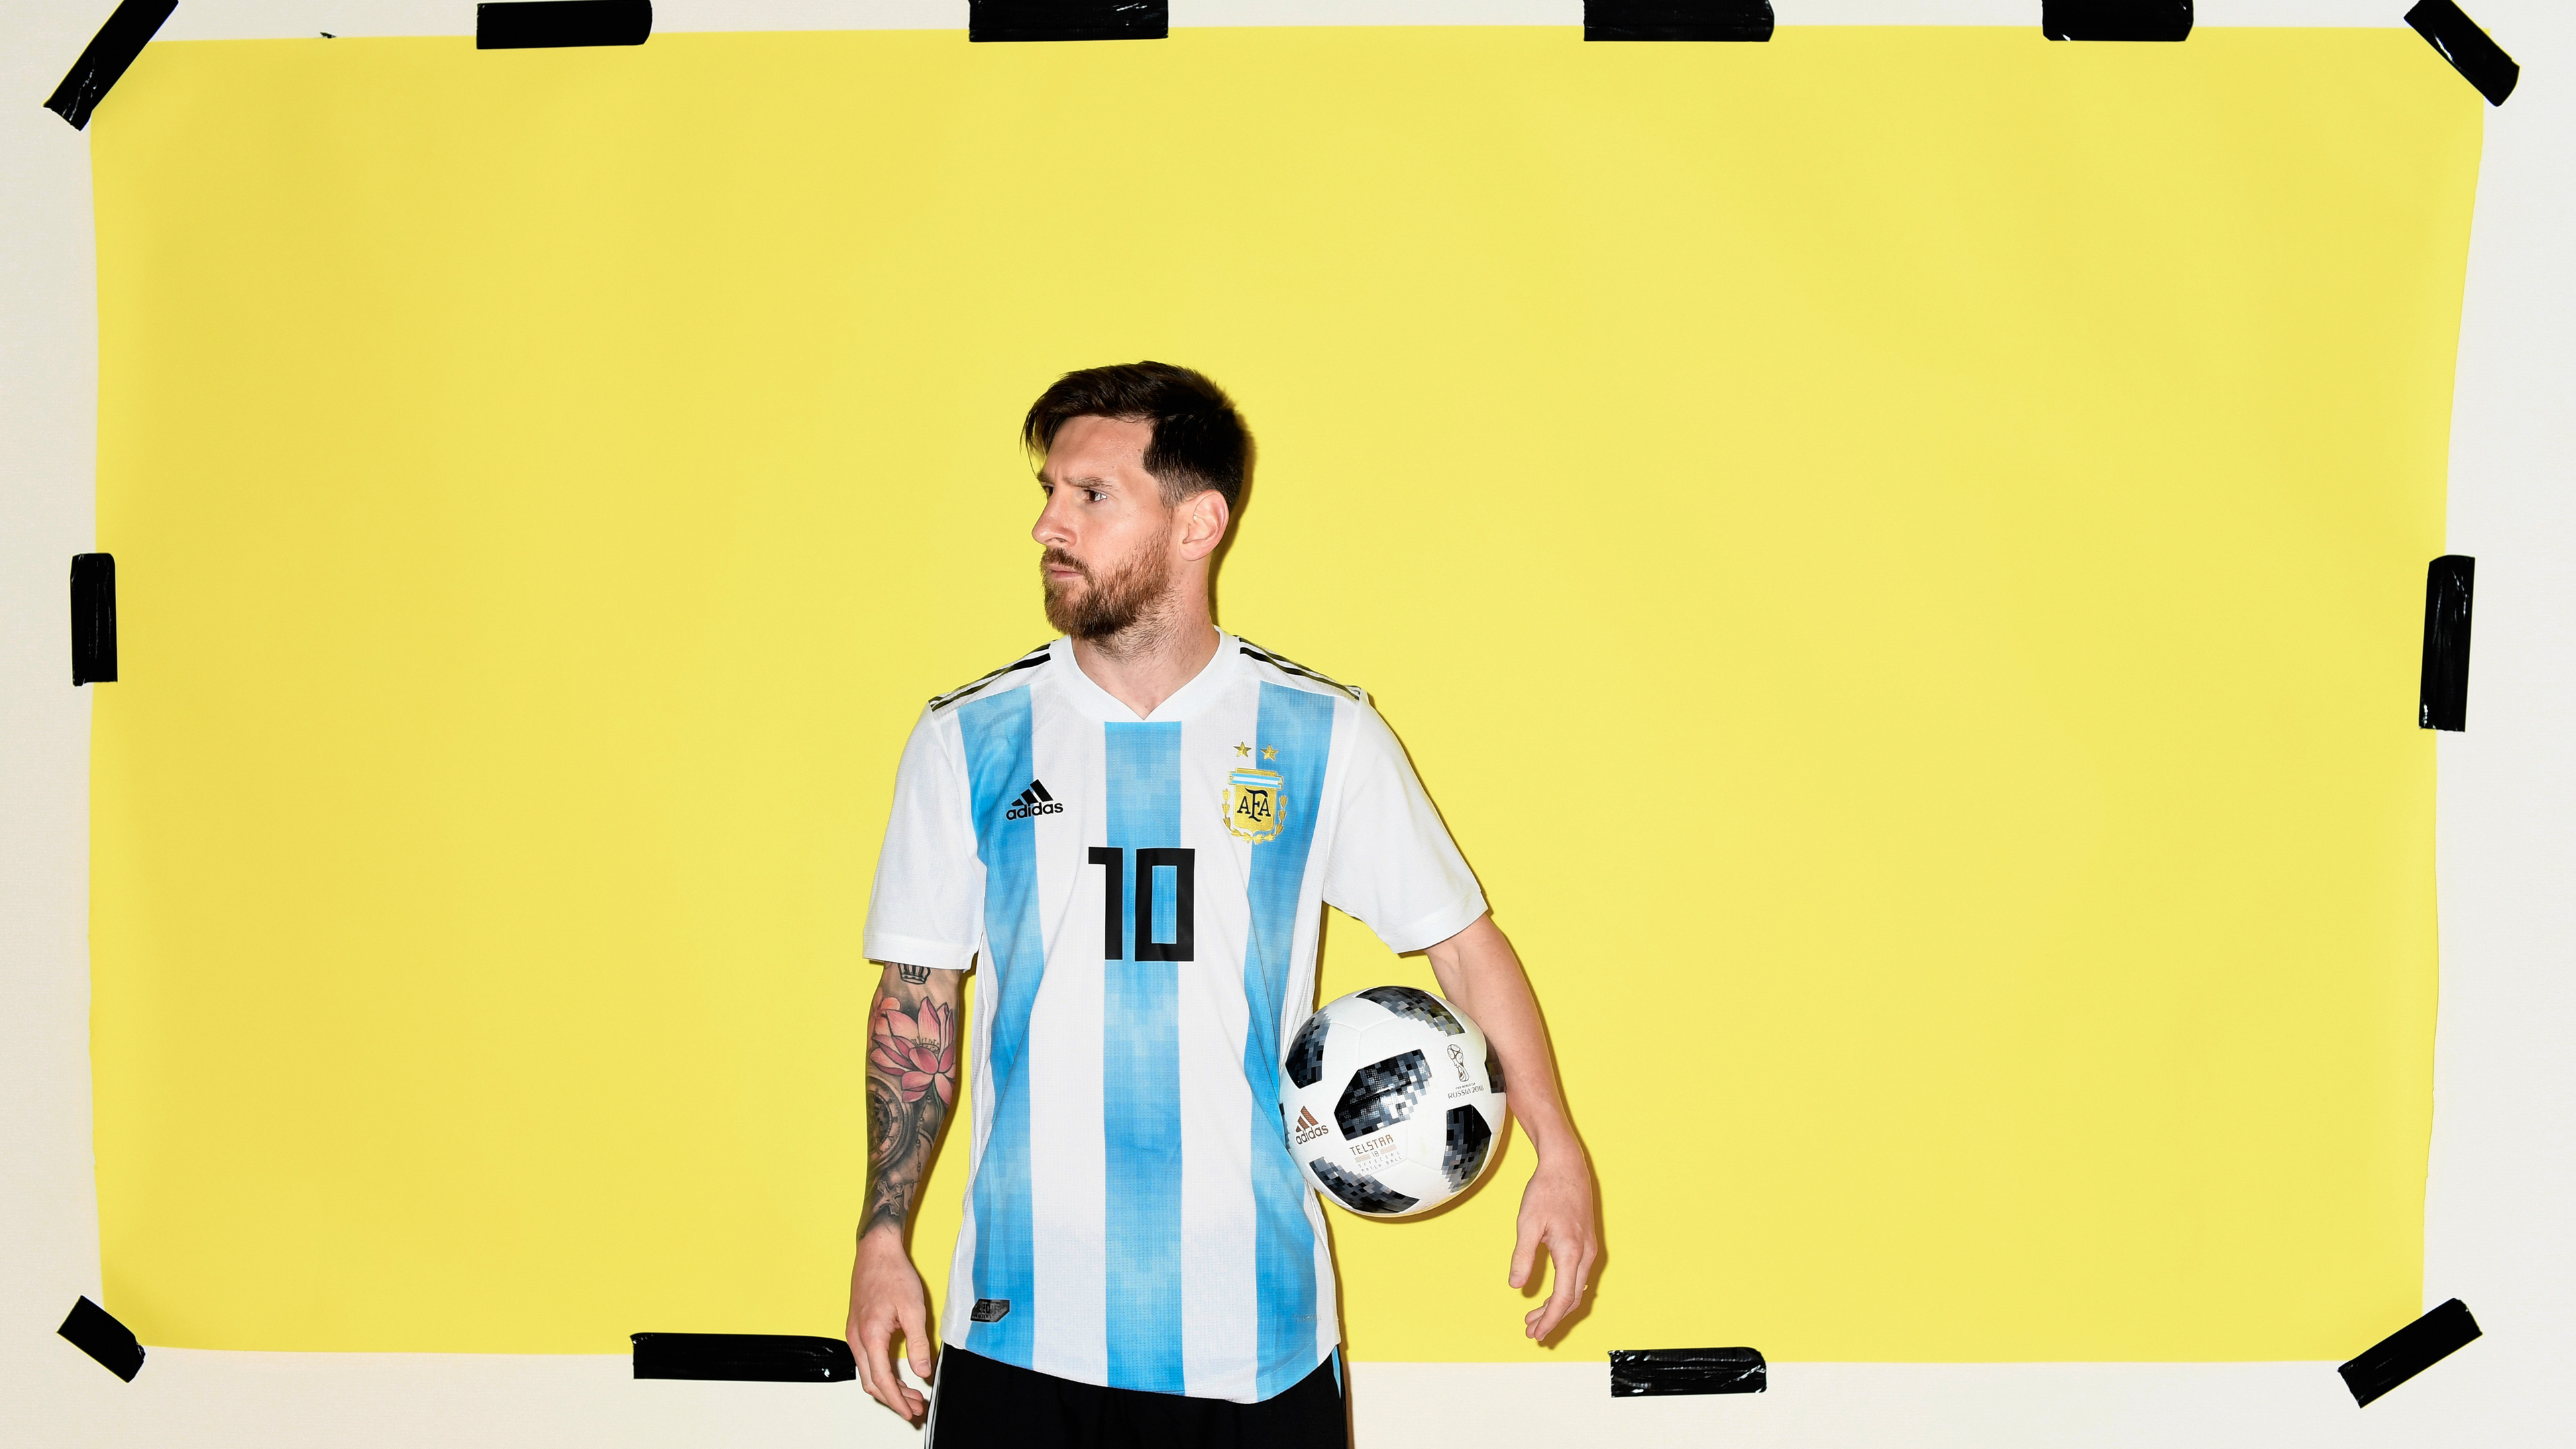 lionel messi argentina portrait 2018 1538786890 - Lionel Messi Argentina Portrait 2018 - sports wallpapers, male celebrities wallpapers, Lionel Messi wallpapers, hd-wallpapers, football wallpapers, fifa world cup russia wallpapers, boys wallpapers, 5k wallpapers, 4k-wallpapers